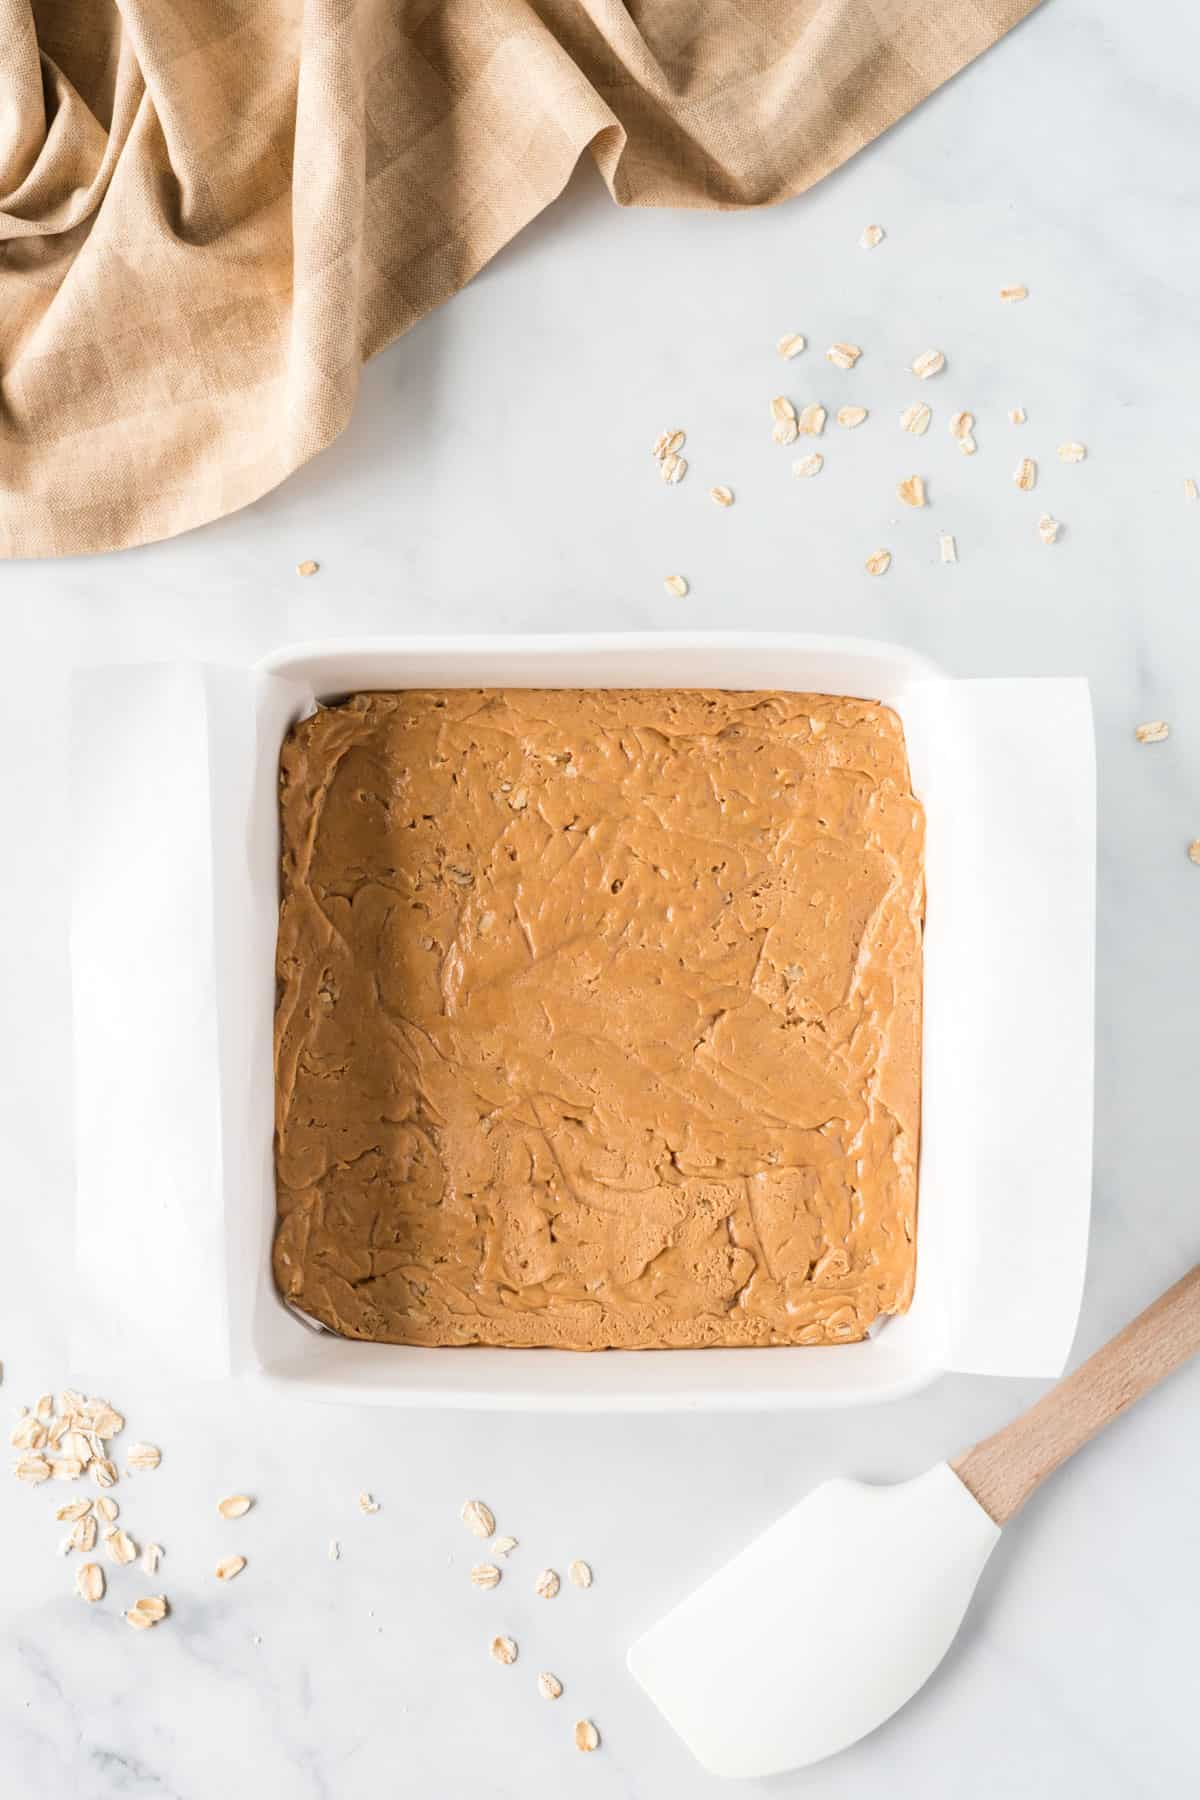 peanut butter protein bar filling pressed into a dish